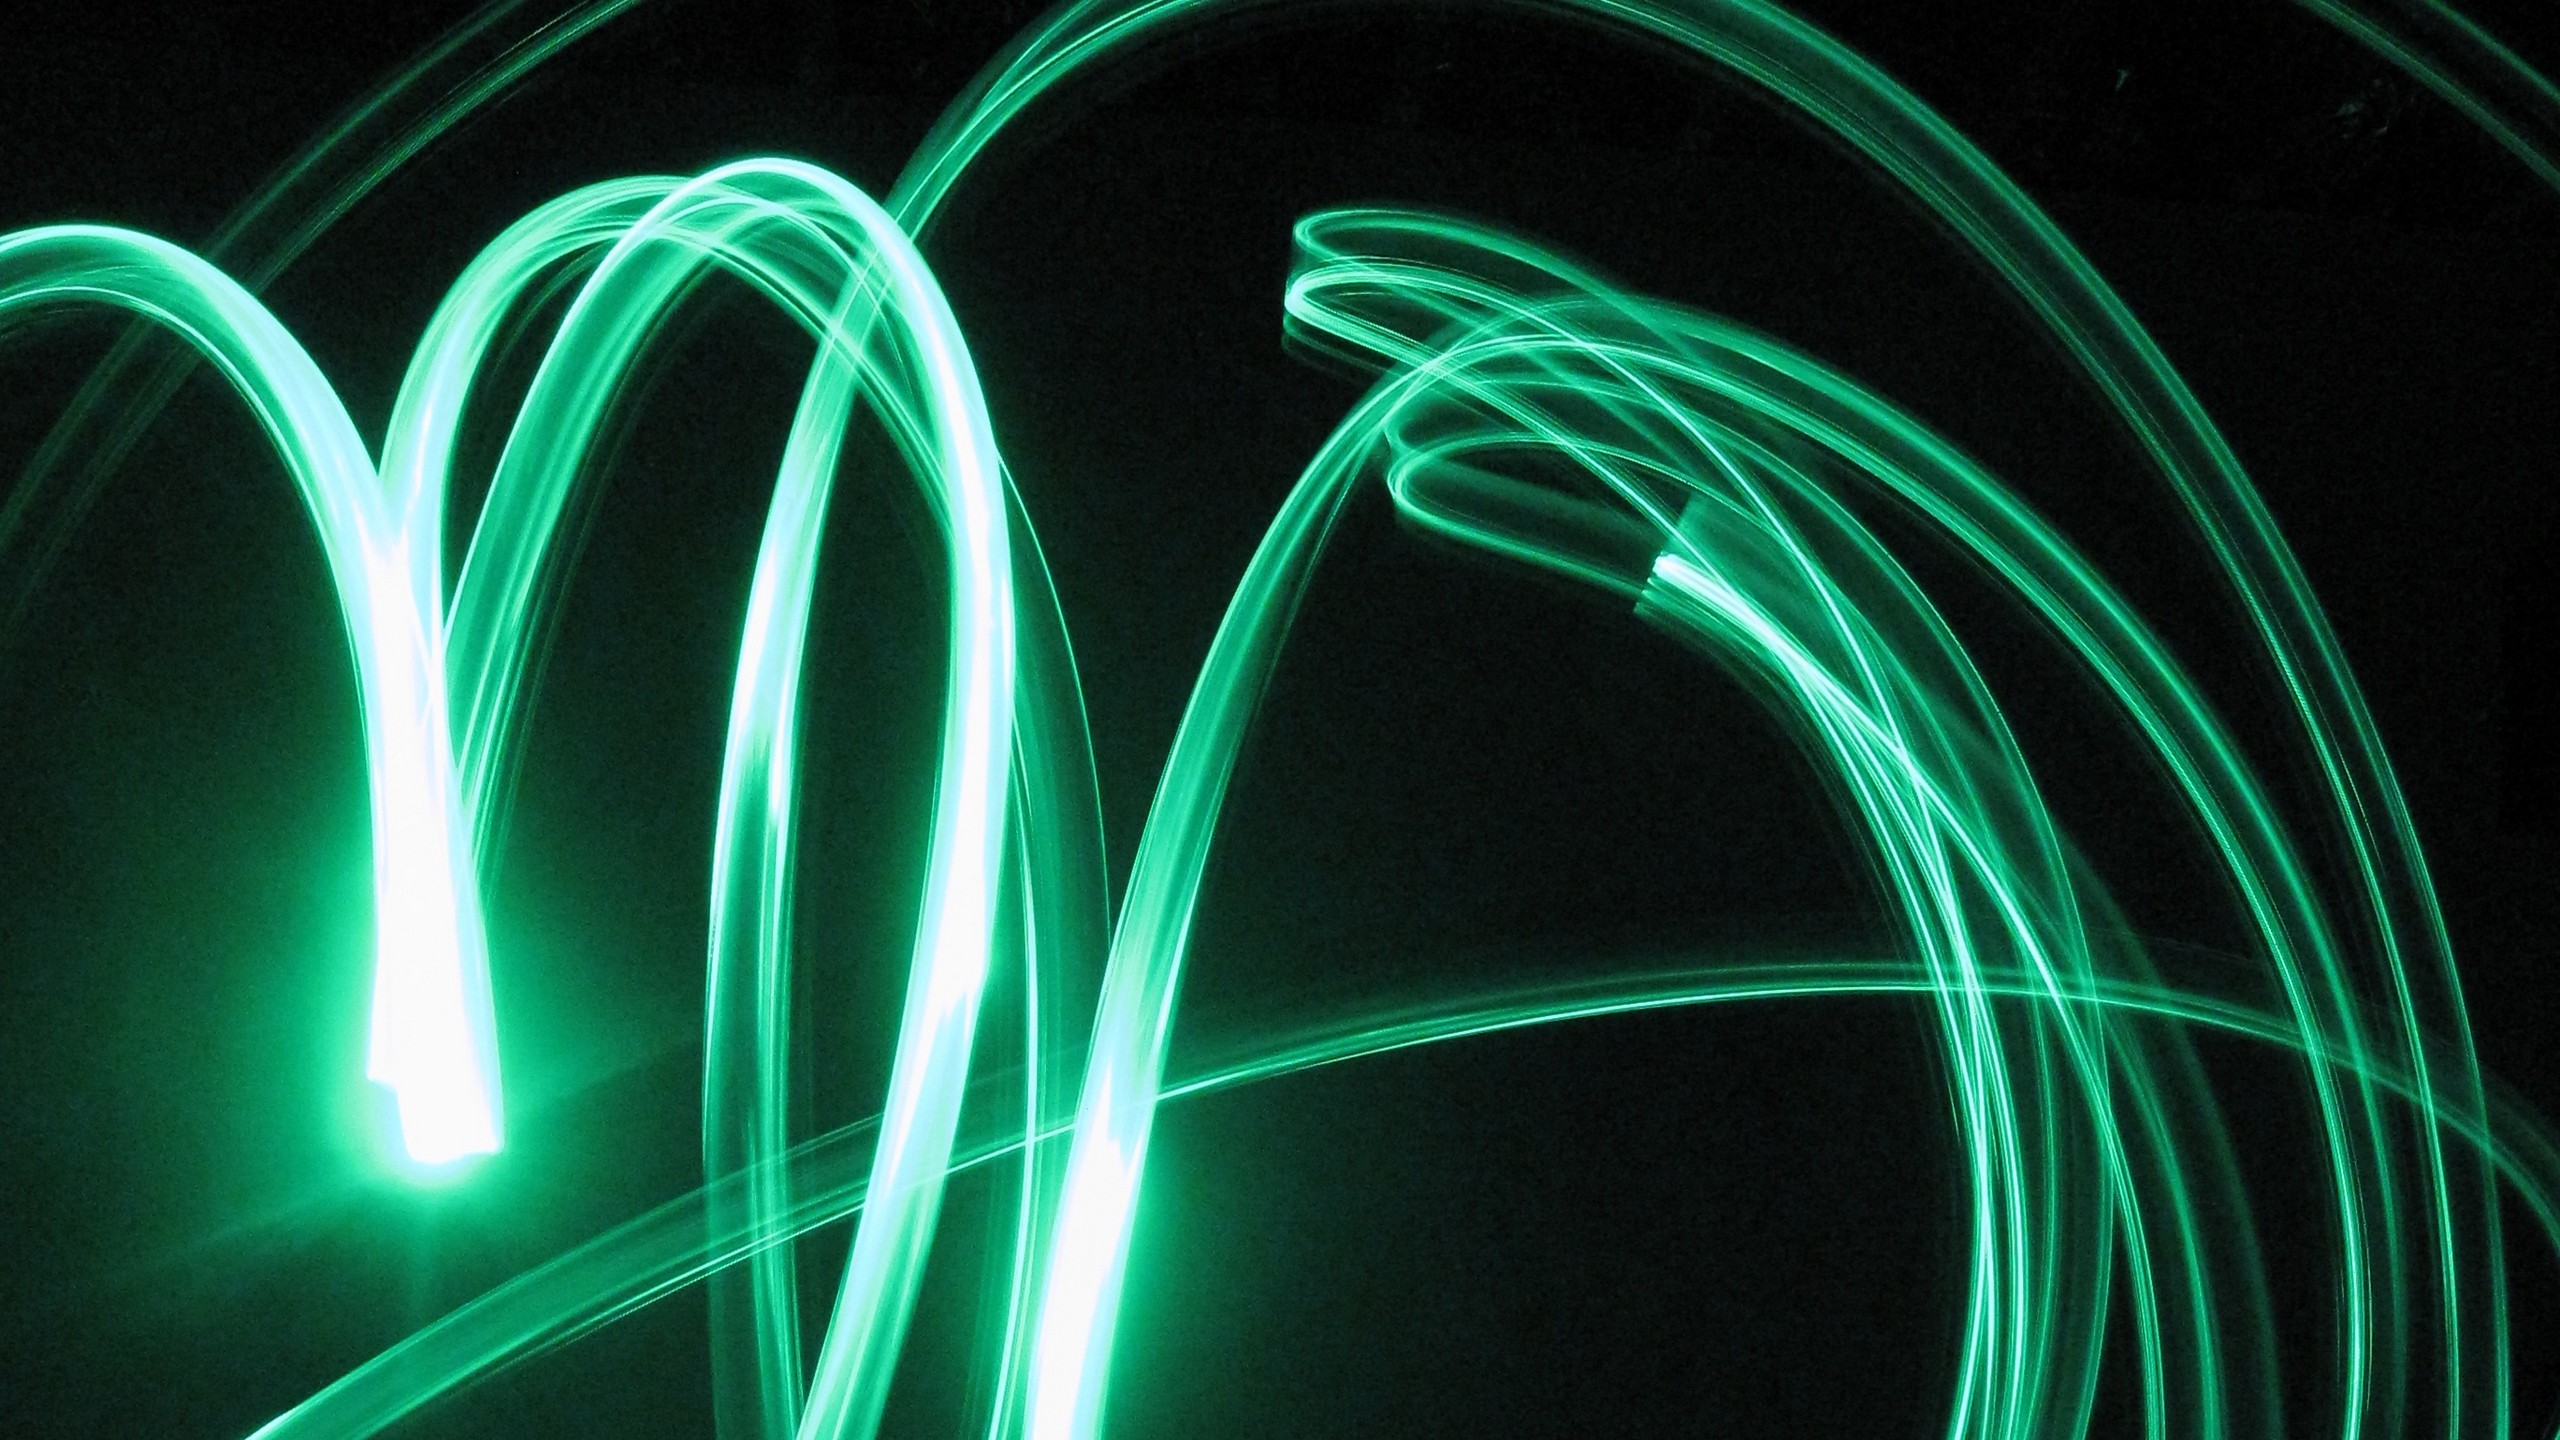 2560x1440  Wallpaper neon, green, light graffiti